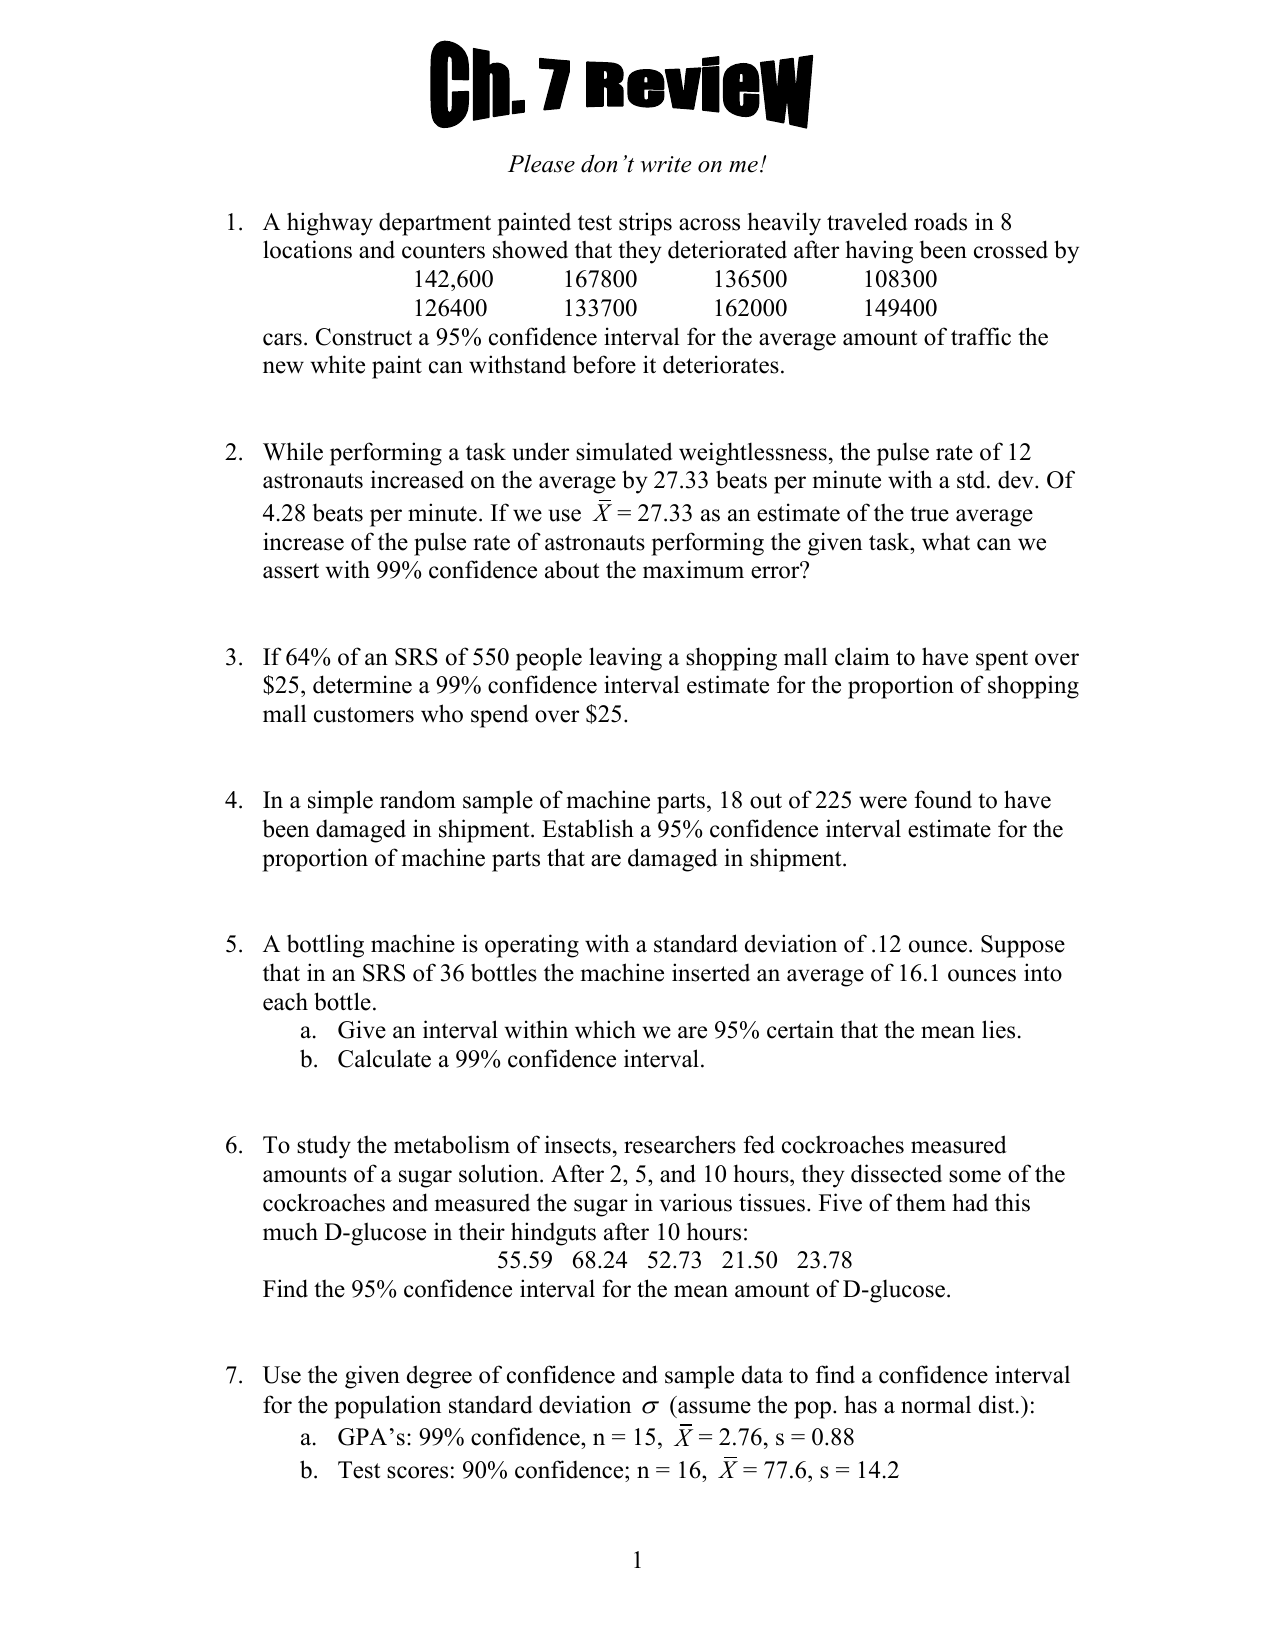 Chapter 7 Review Worksheet